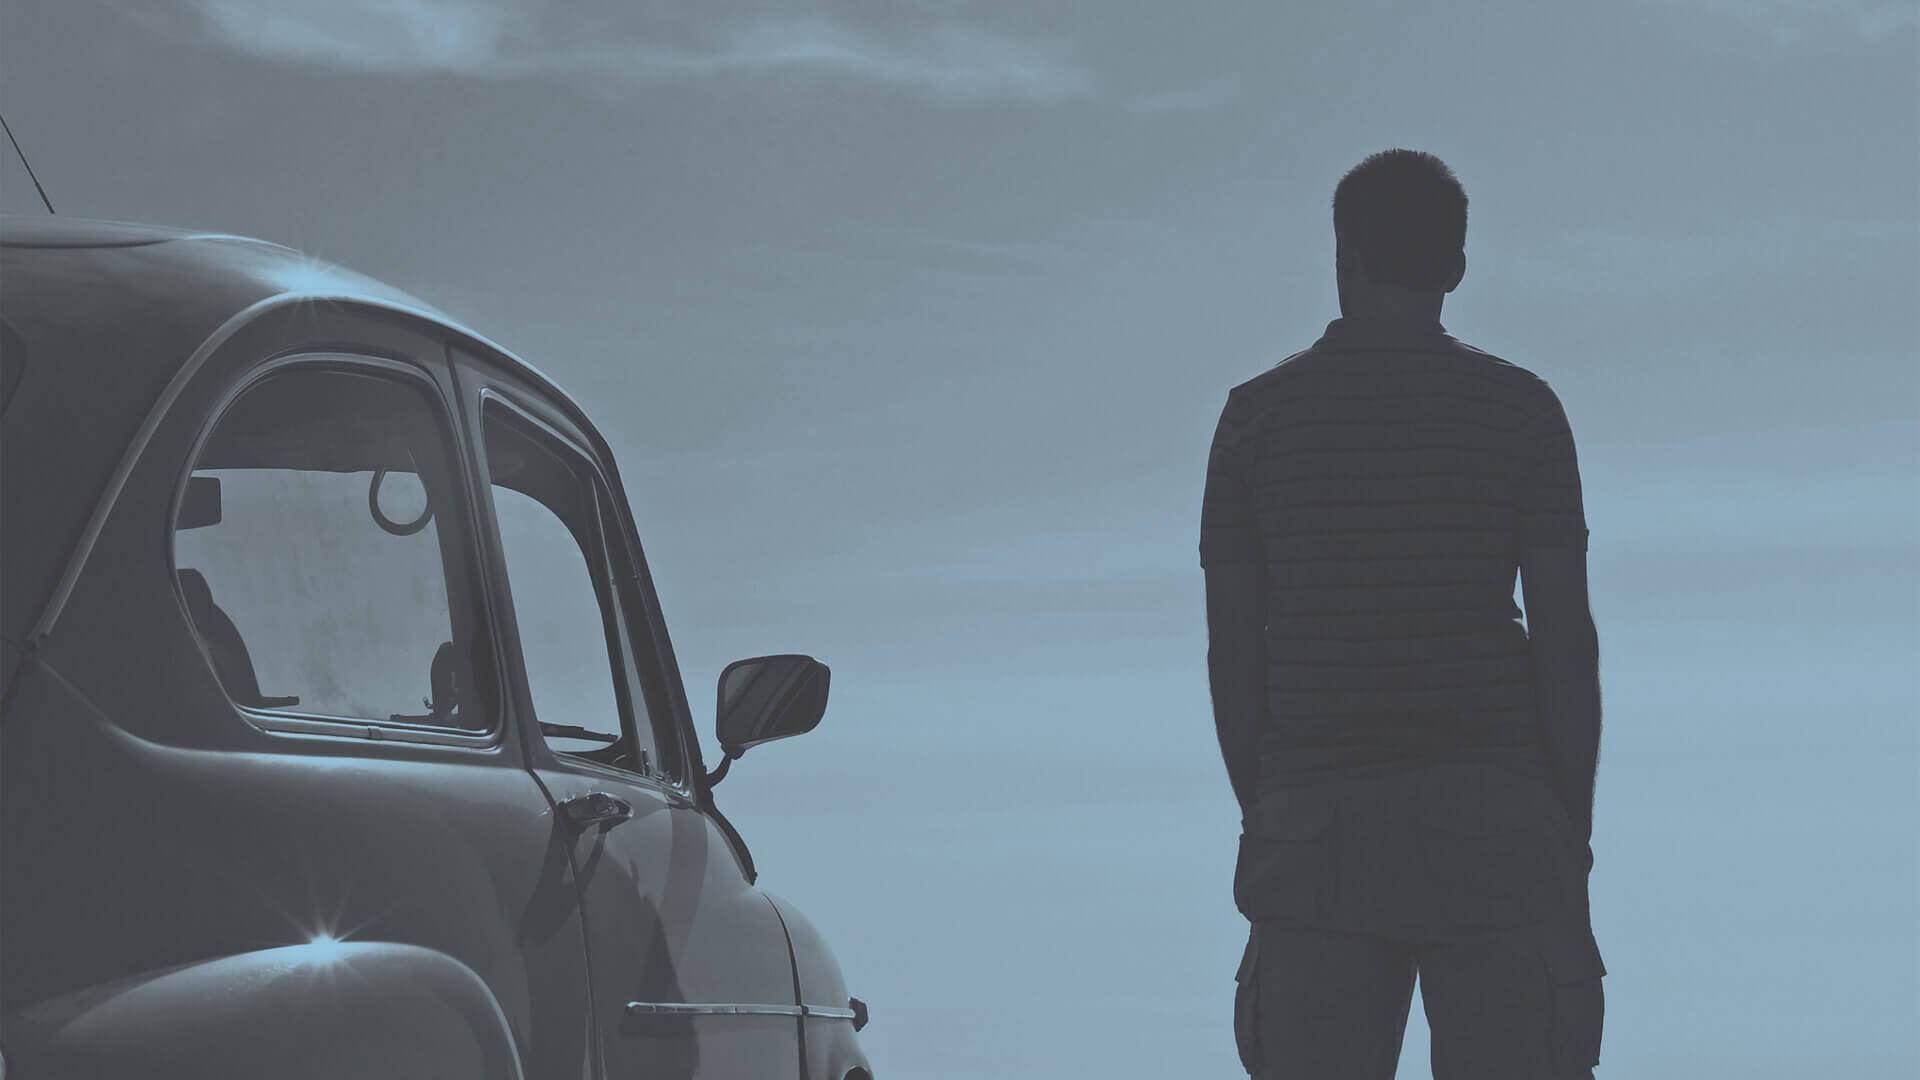 Man standing in front of car remembering his deceased loved one